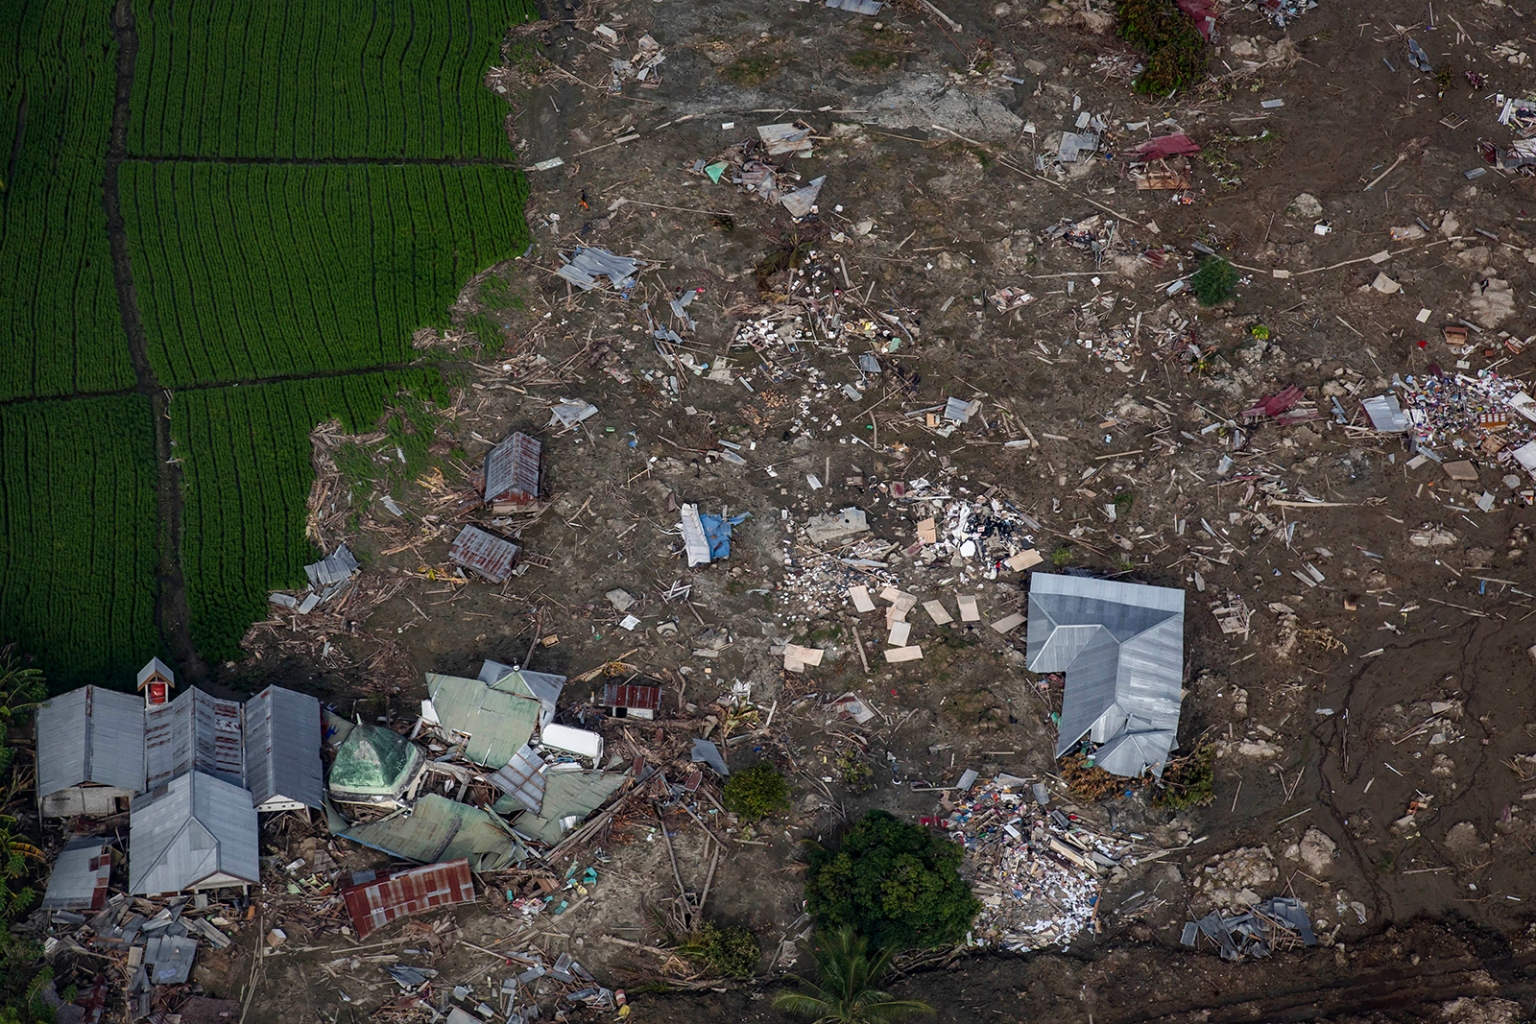 Destroyed houses and debris cover fields following the earthquake and tsunami in Central Sulawesi, Indonesia, on Oct. 4. Ulet Ifansasti/Getty Images